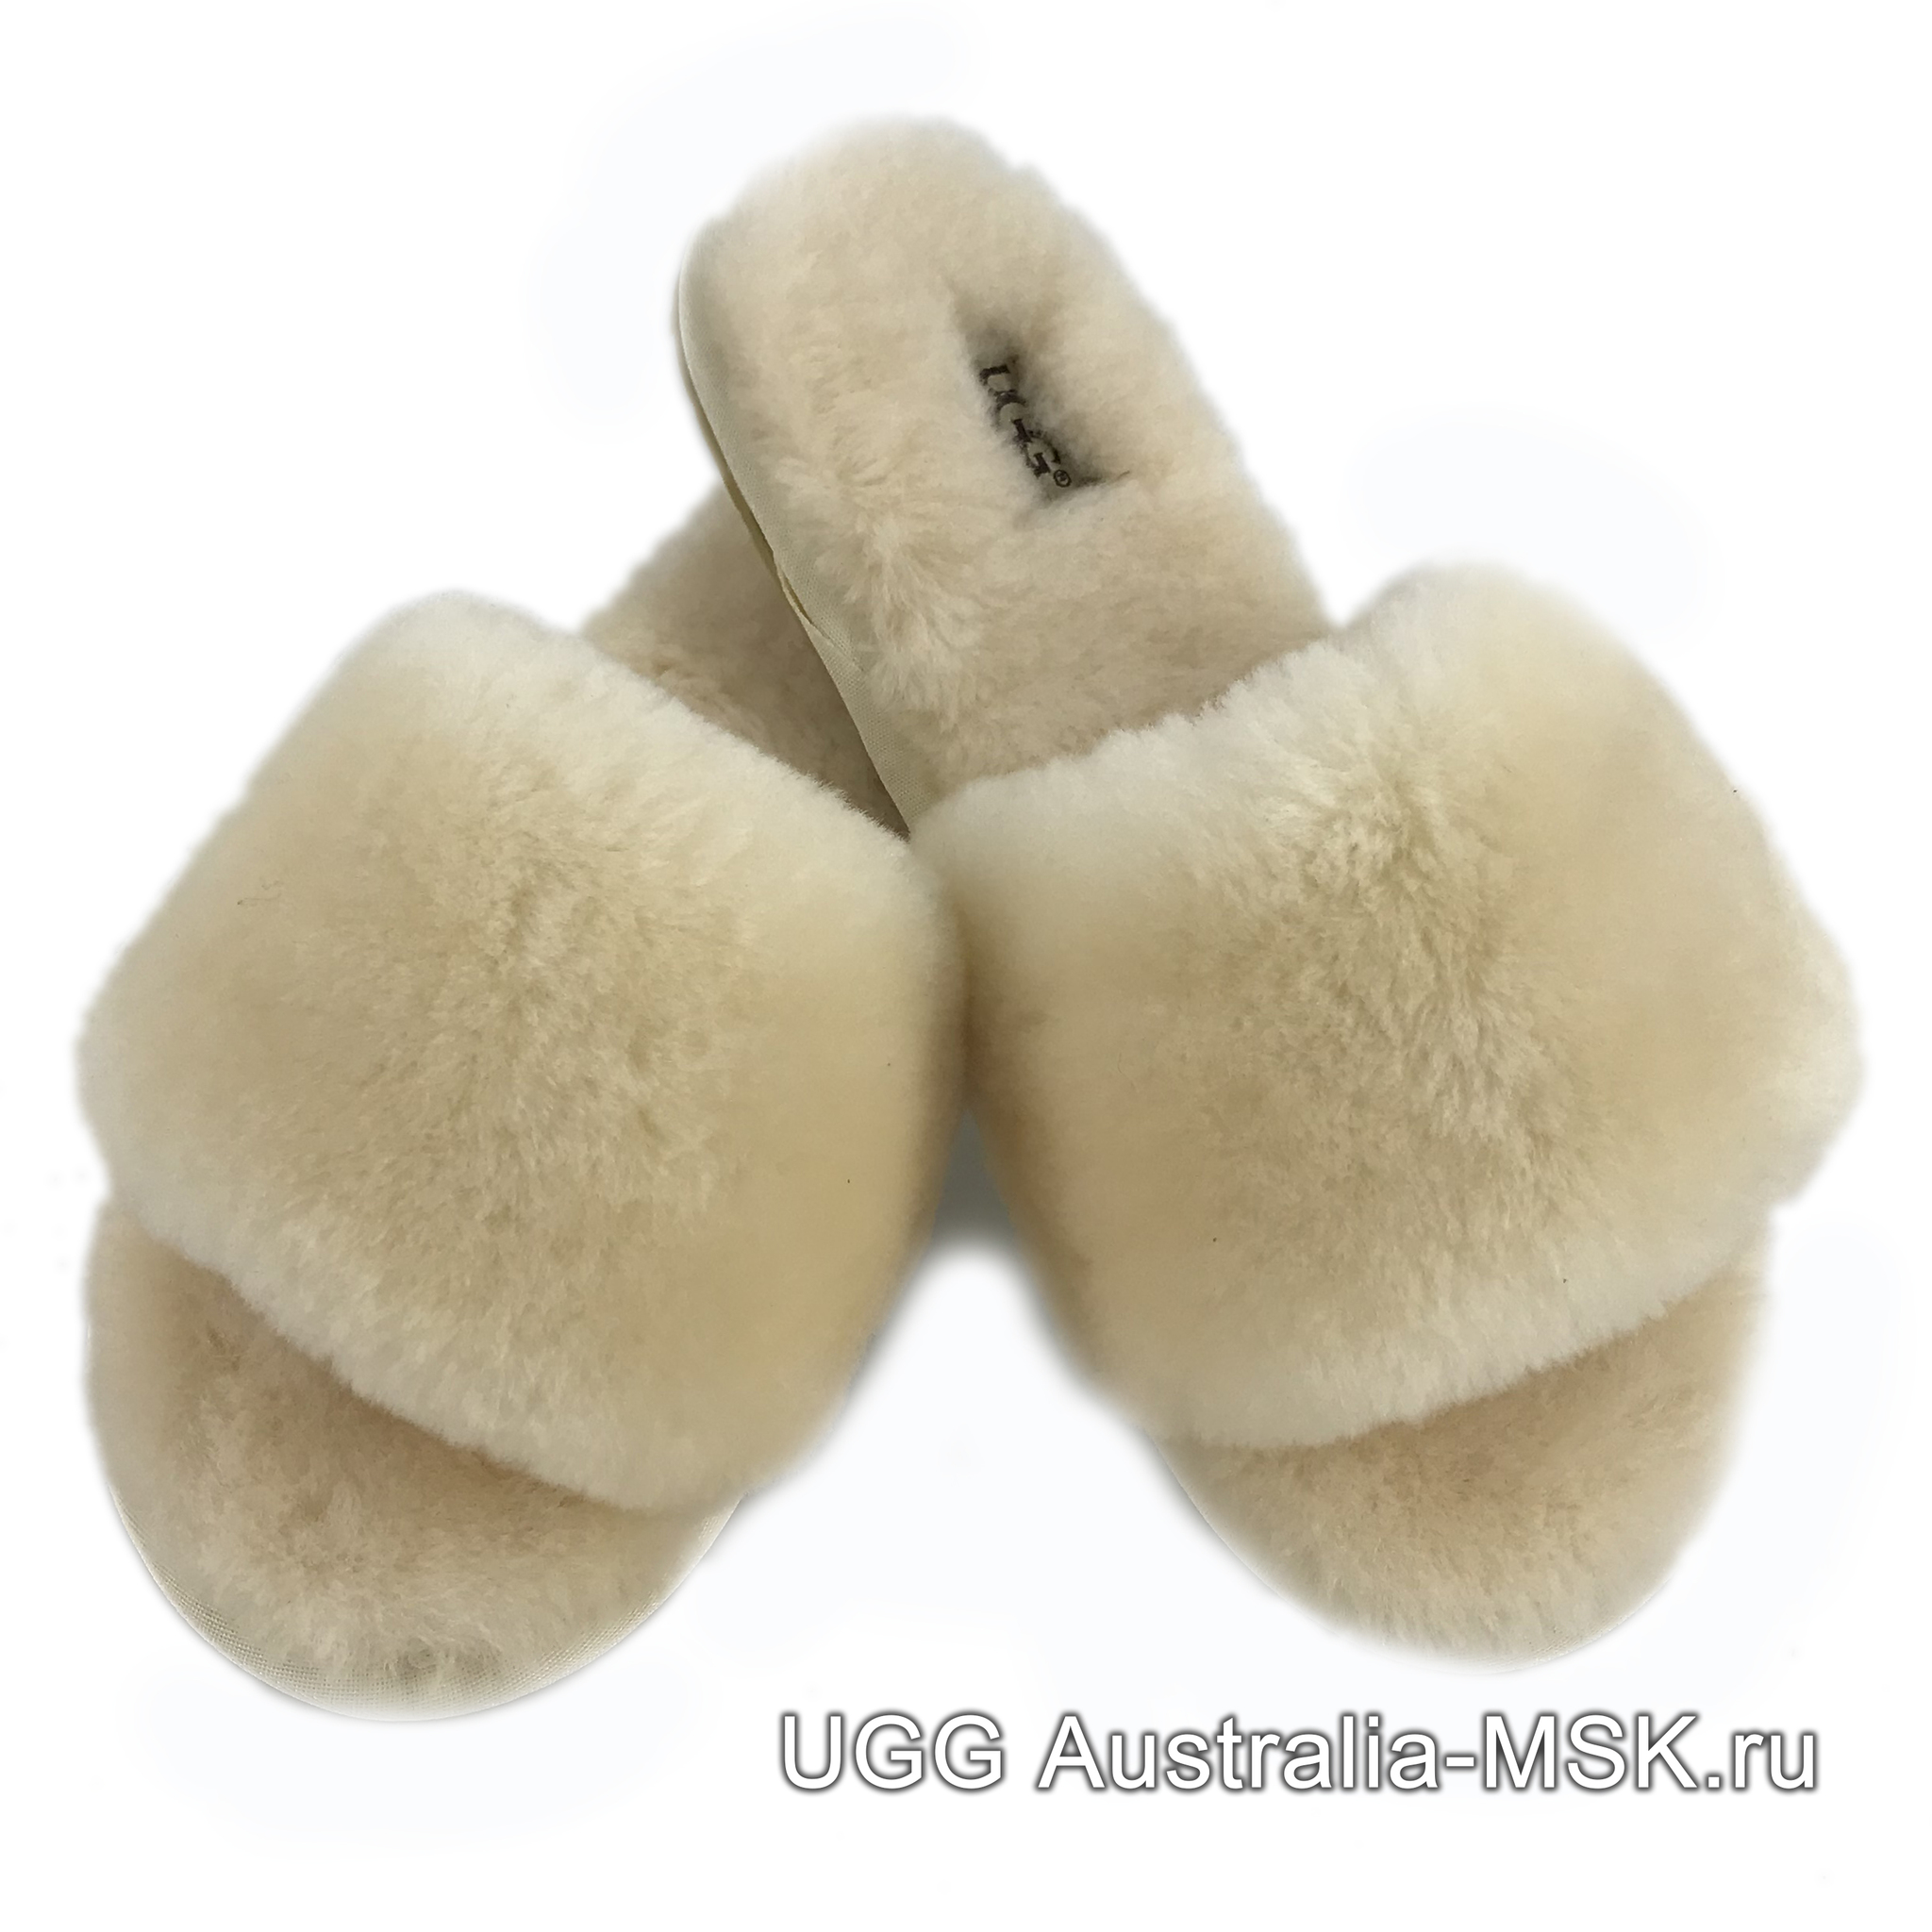 UGG Slipper Cream